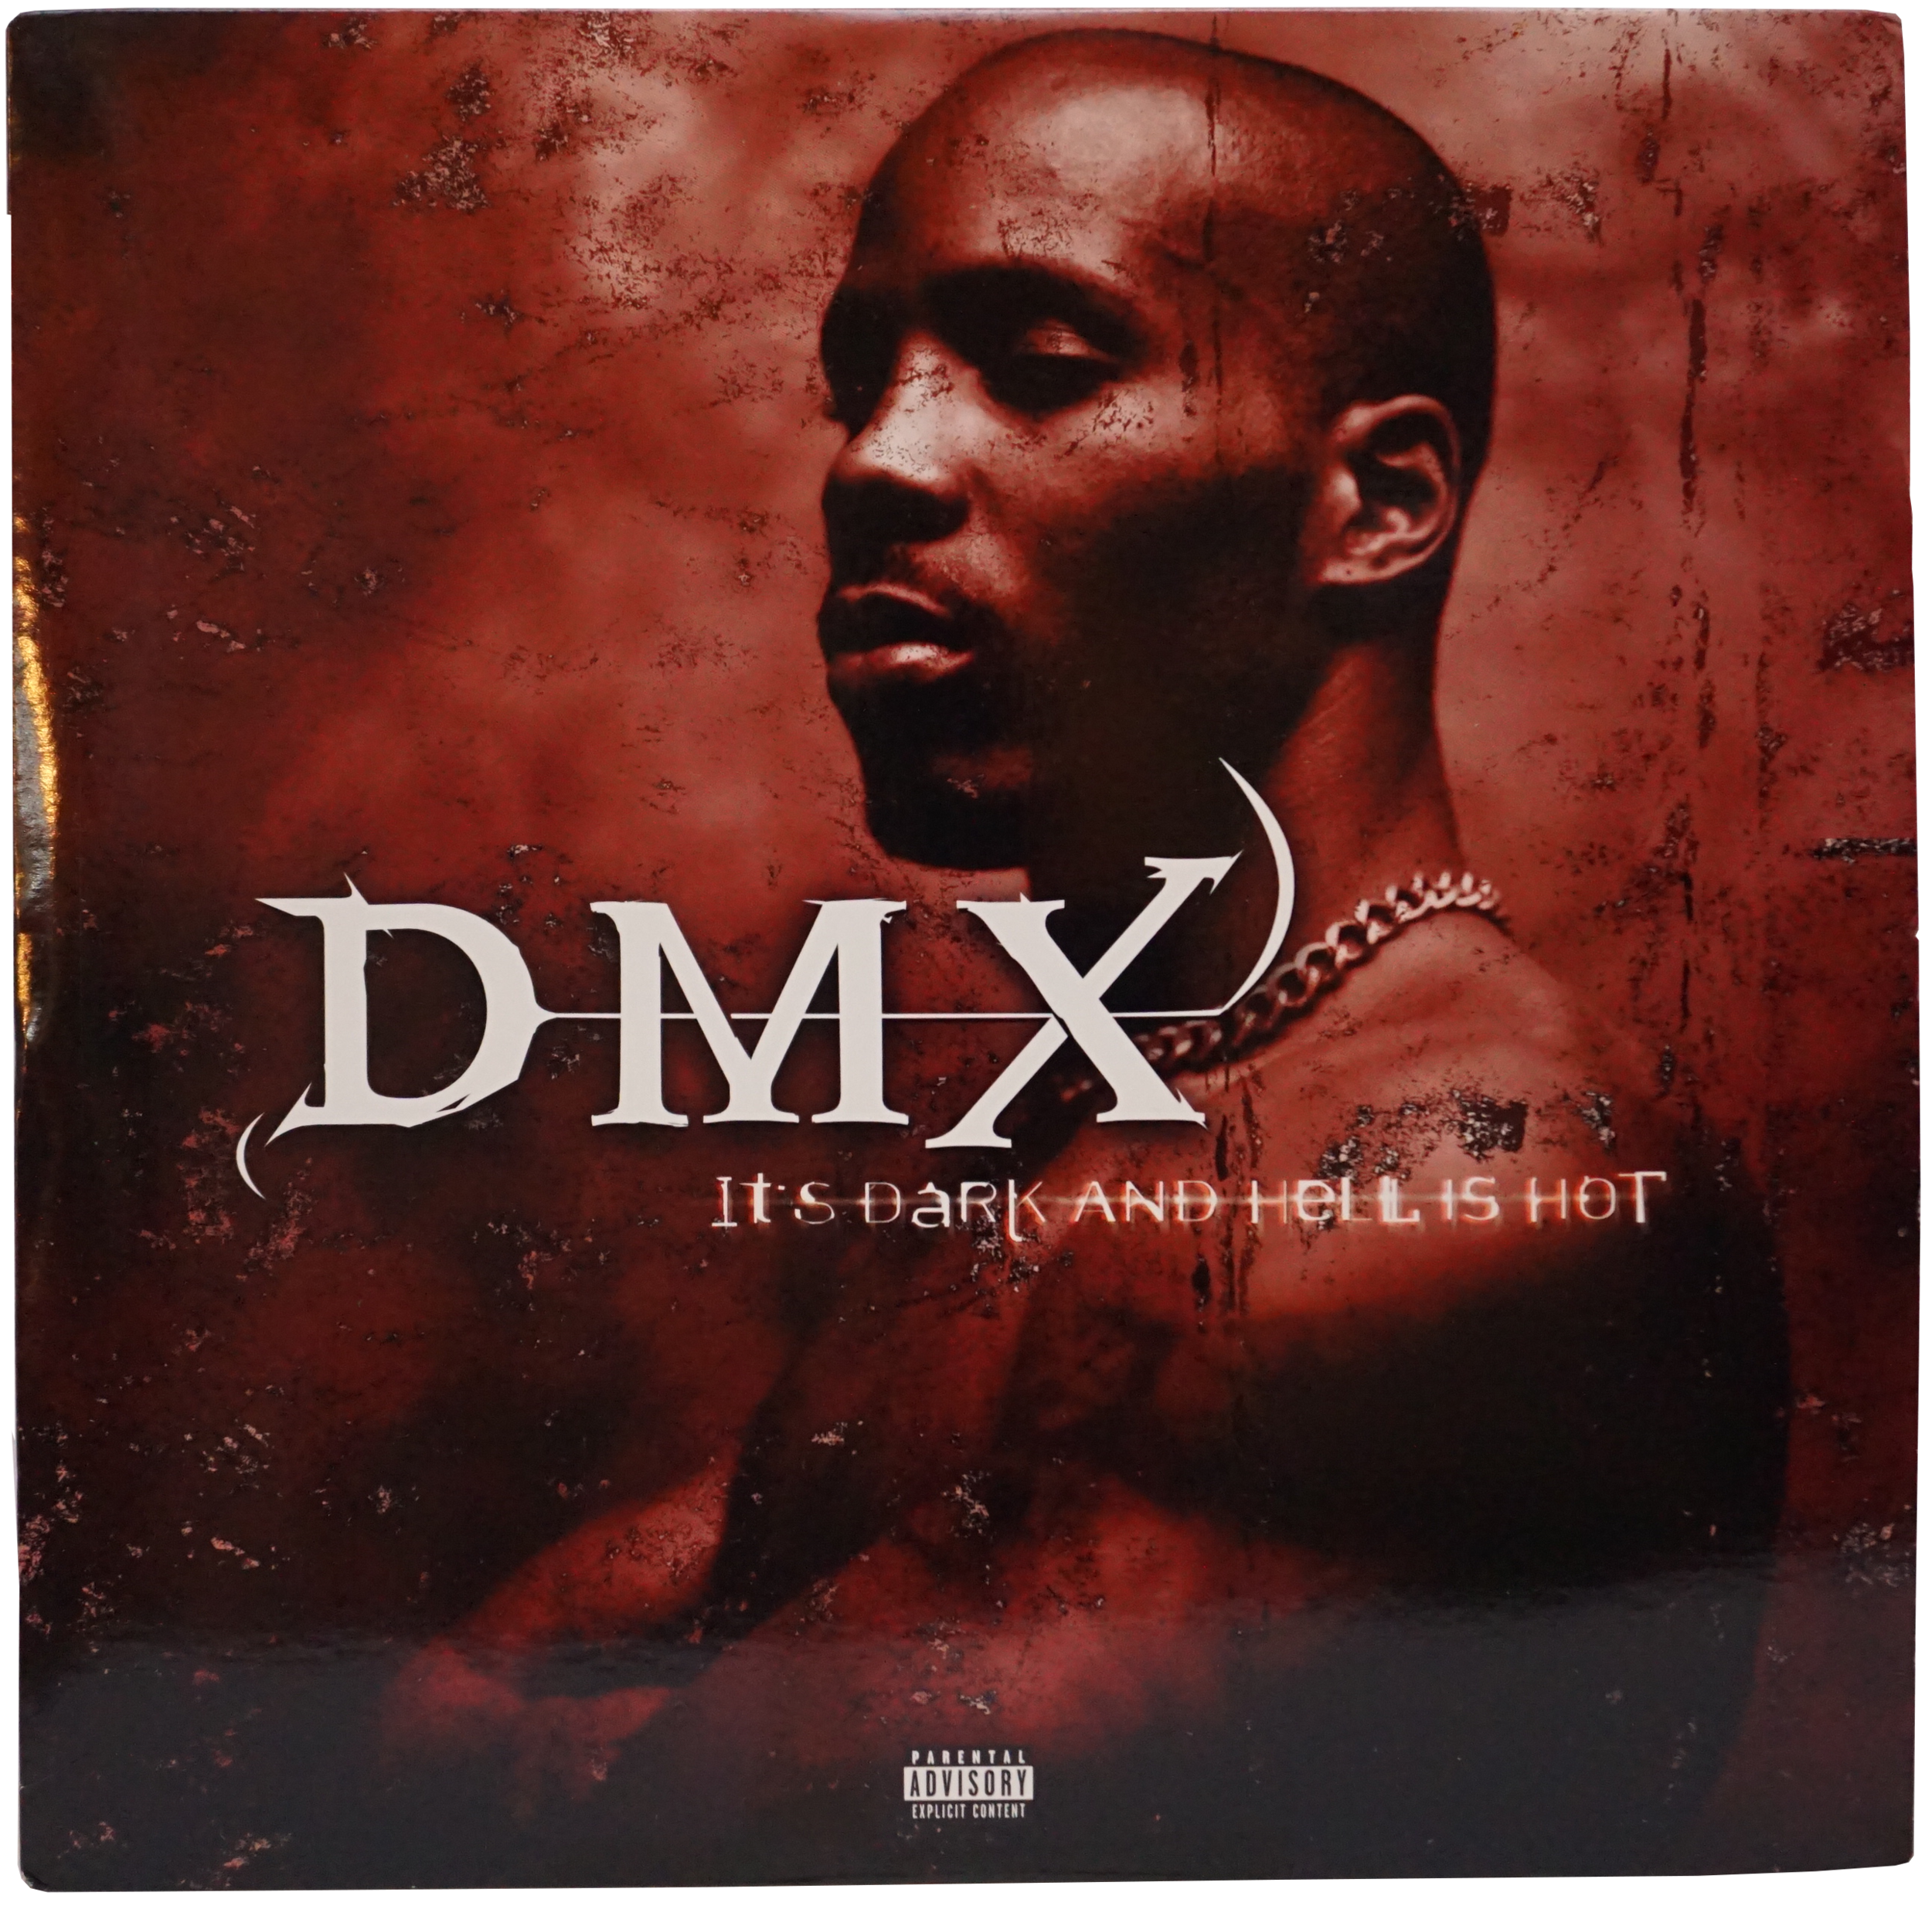 WLWLTDOO-1998-LP-DMX-ITS_DARK_AND_HELL_IS_HOT-FRONT-DEF2241.png